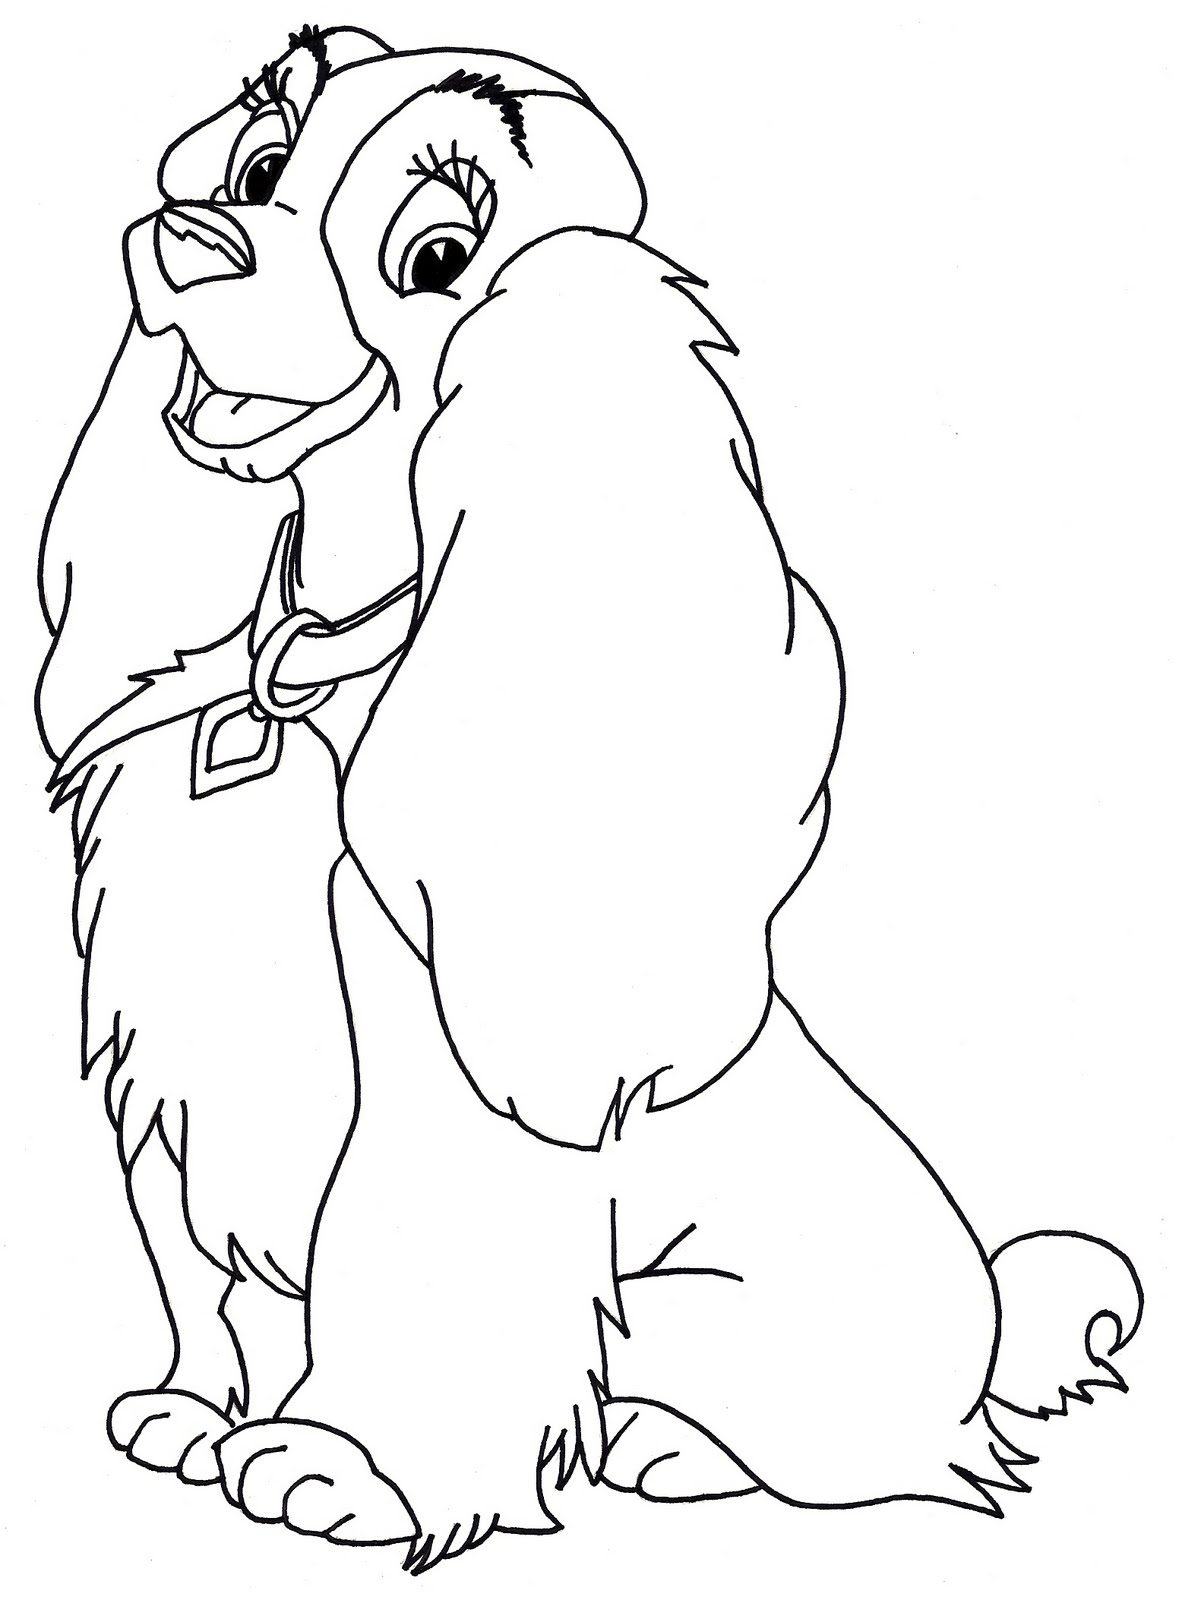 Disney Coloring Pages Colouring In Pages Disney